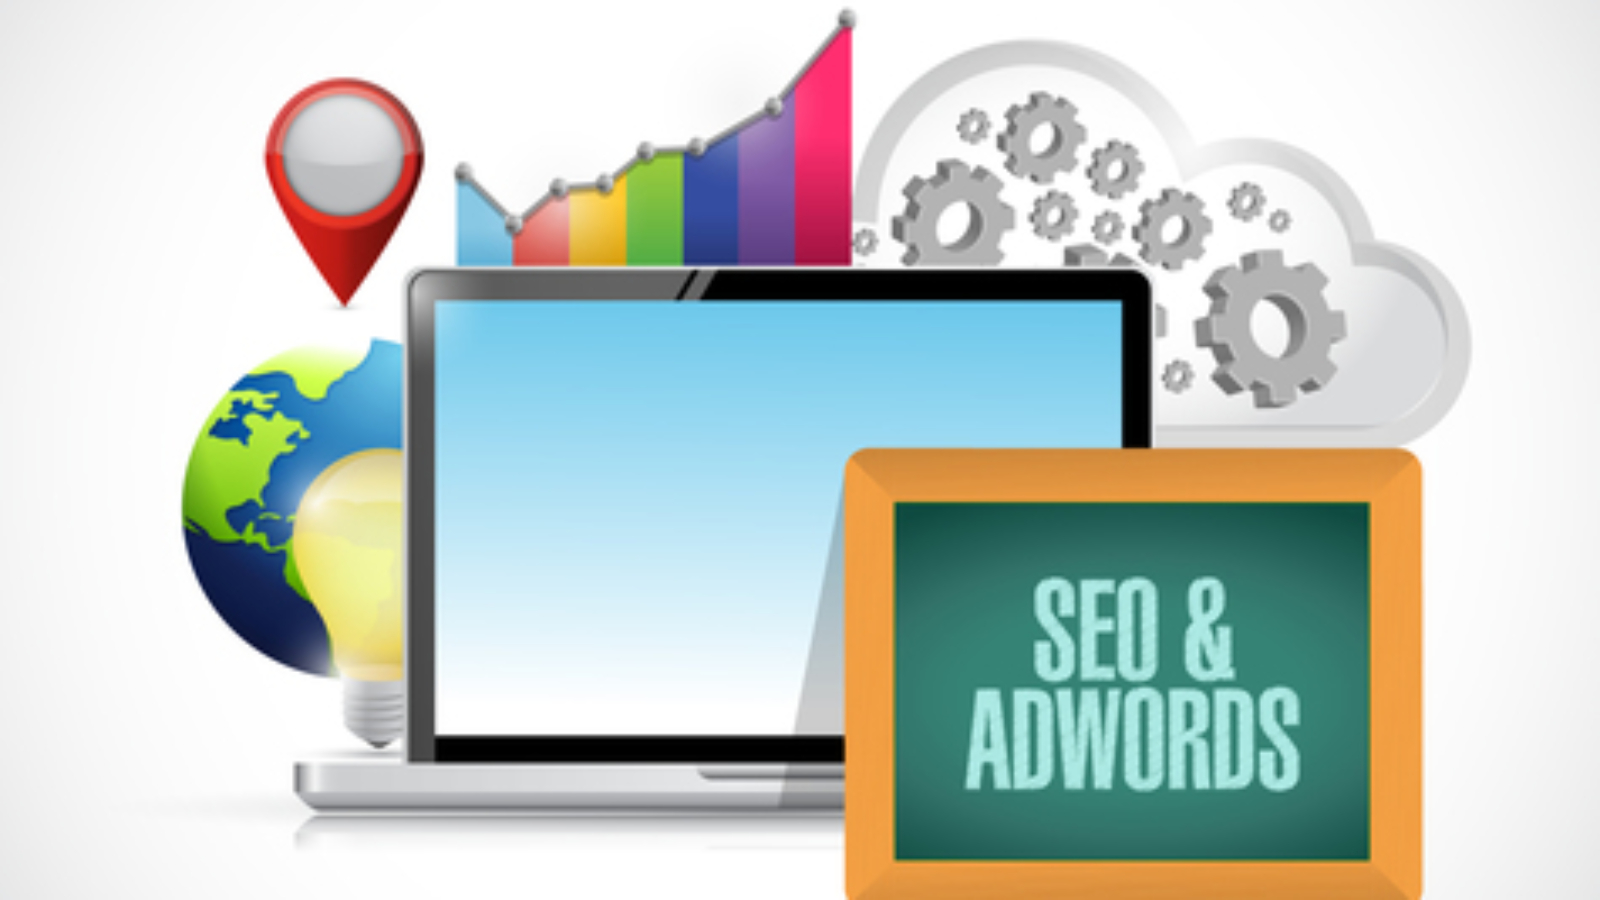 seo and adwords data computer